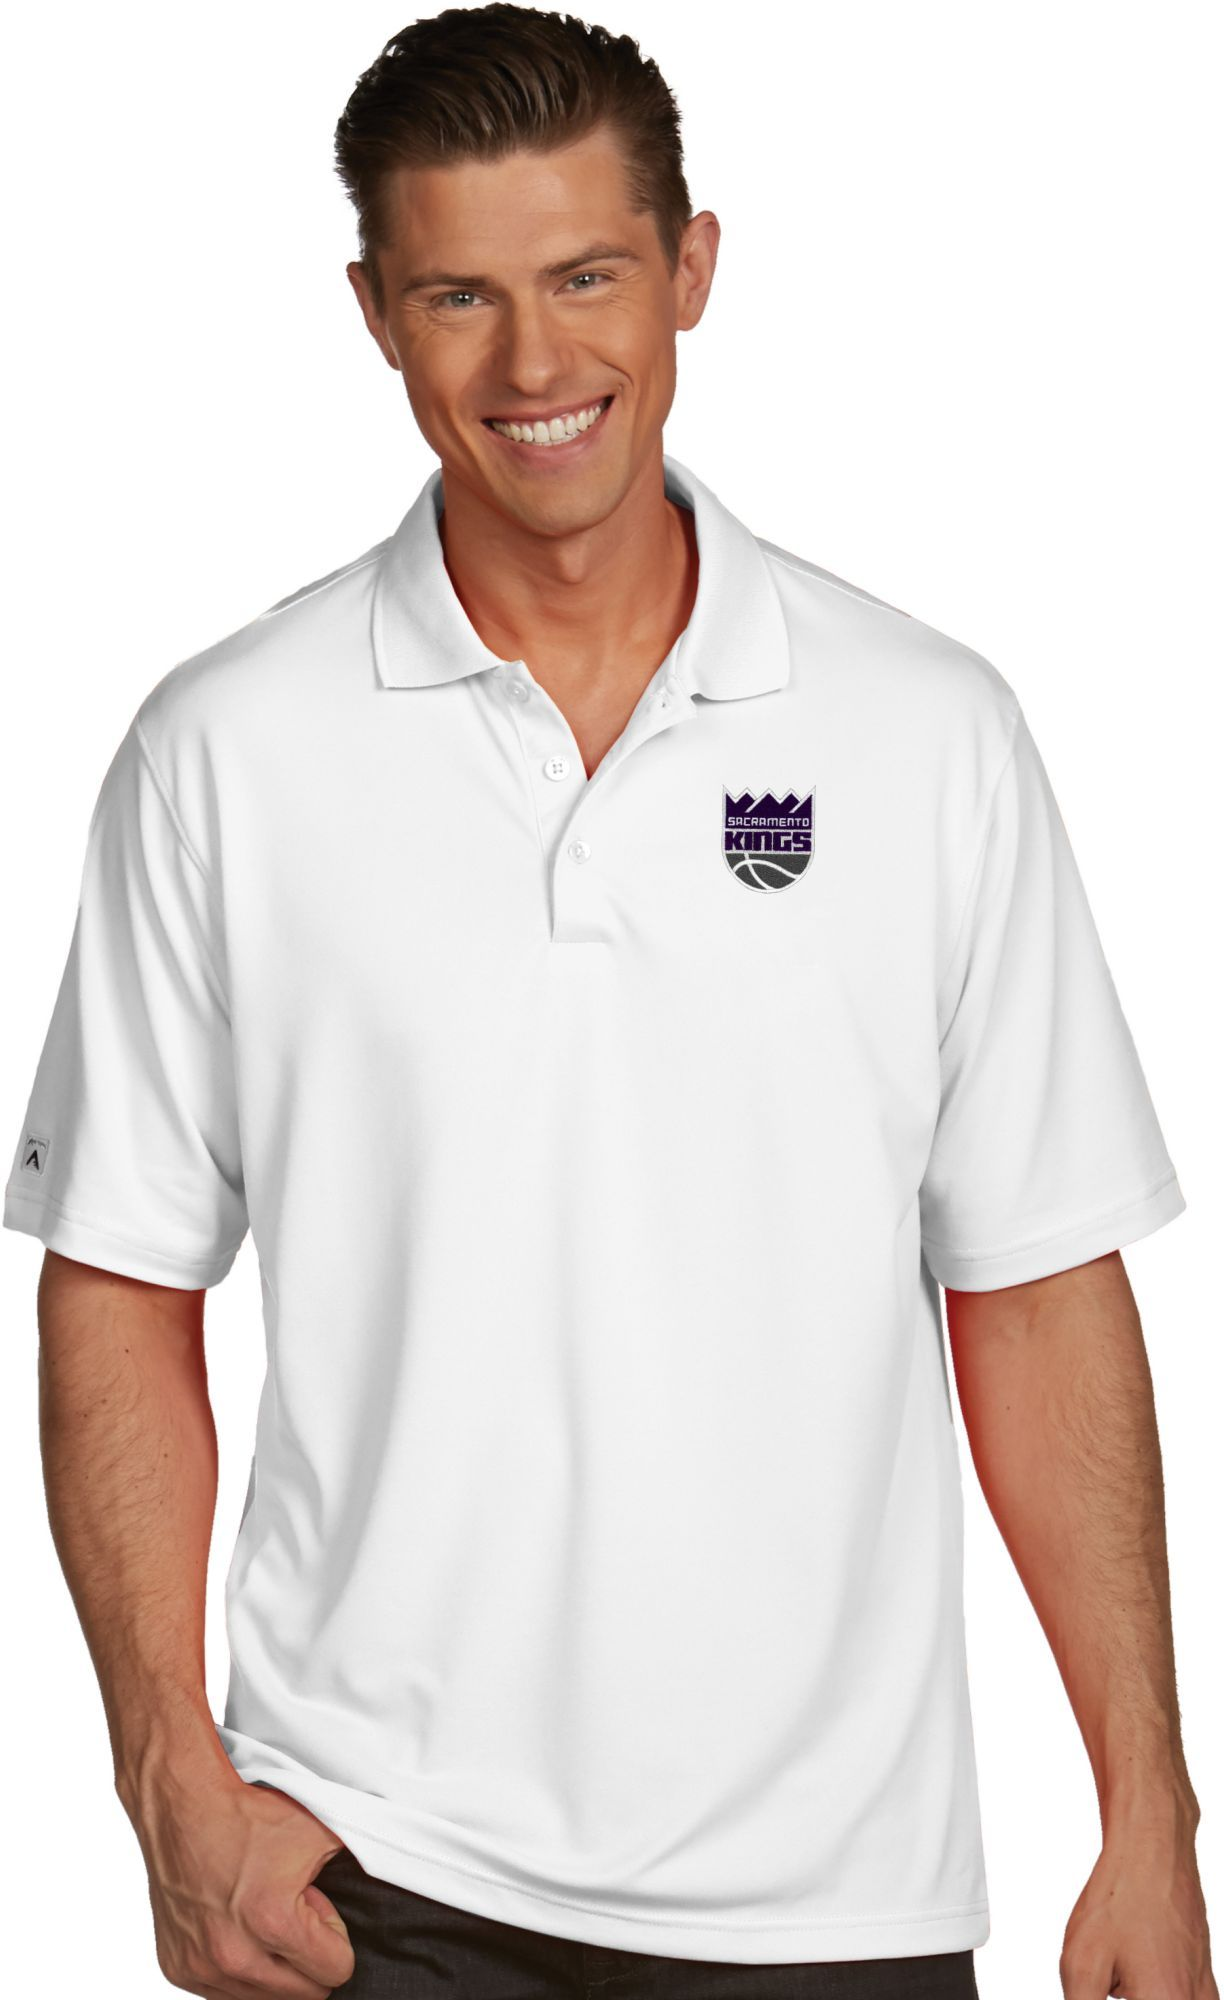 5b0469556f7 Antigua Men's Sacramento Kings Xtra-Lite White Pique Performance Polo,  Size: Medium, Team